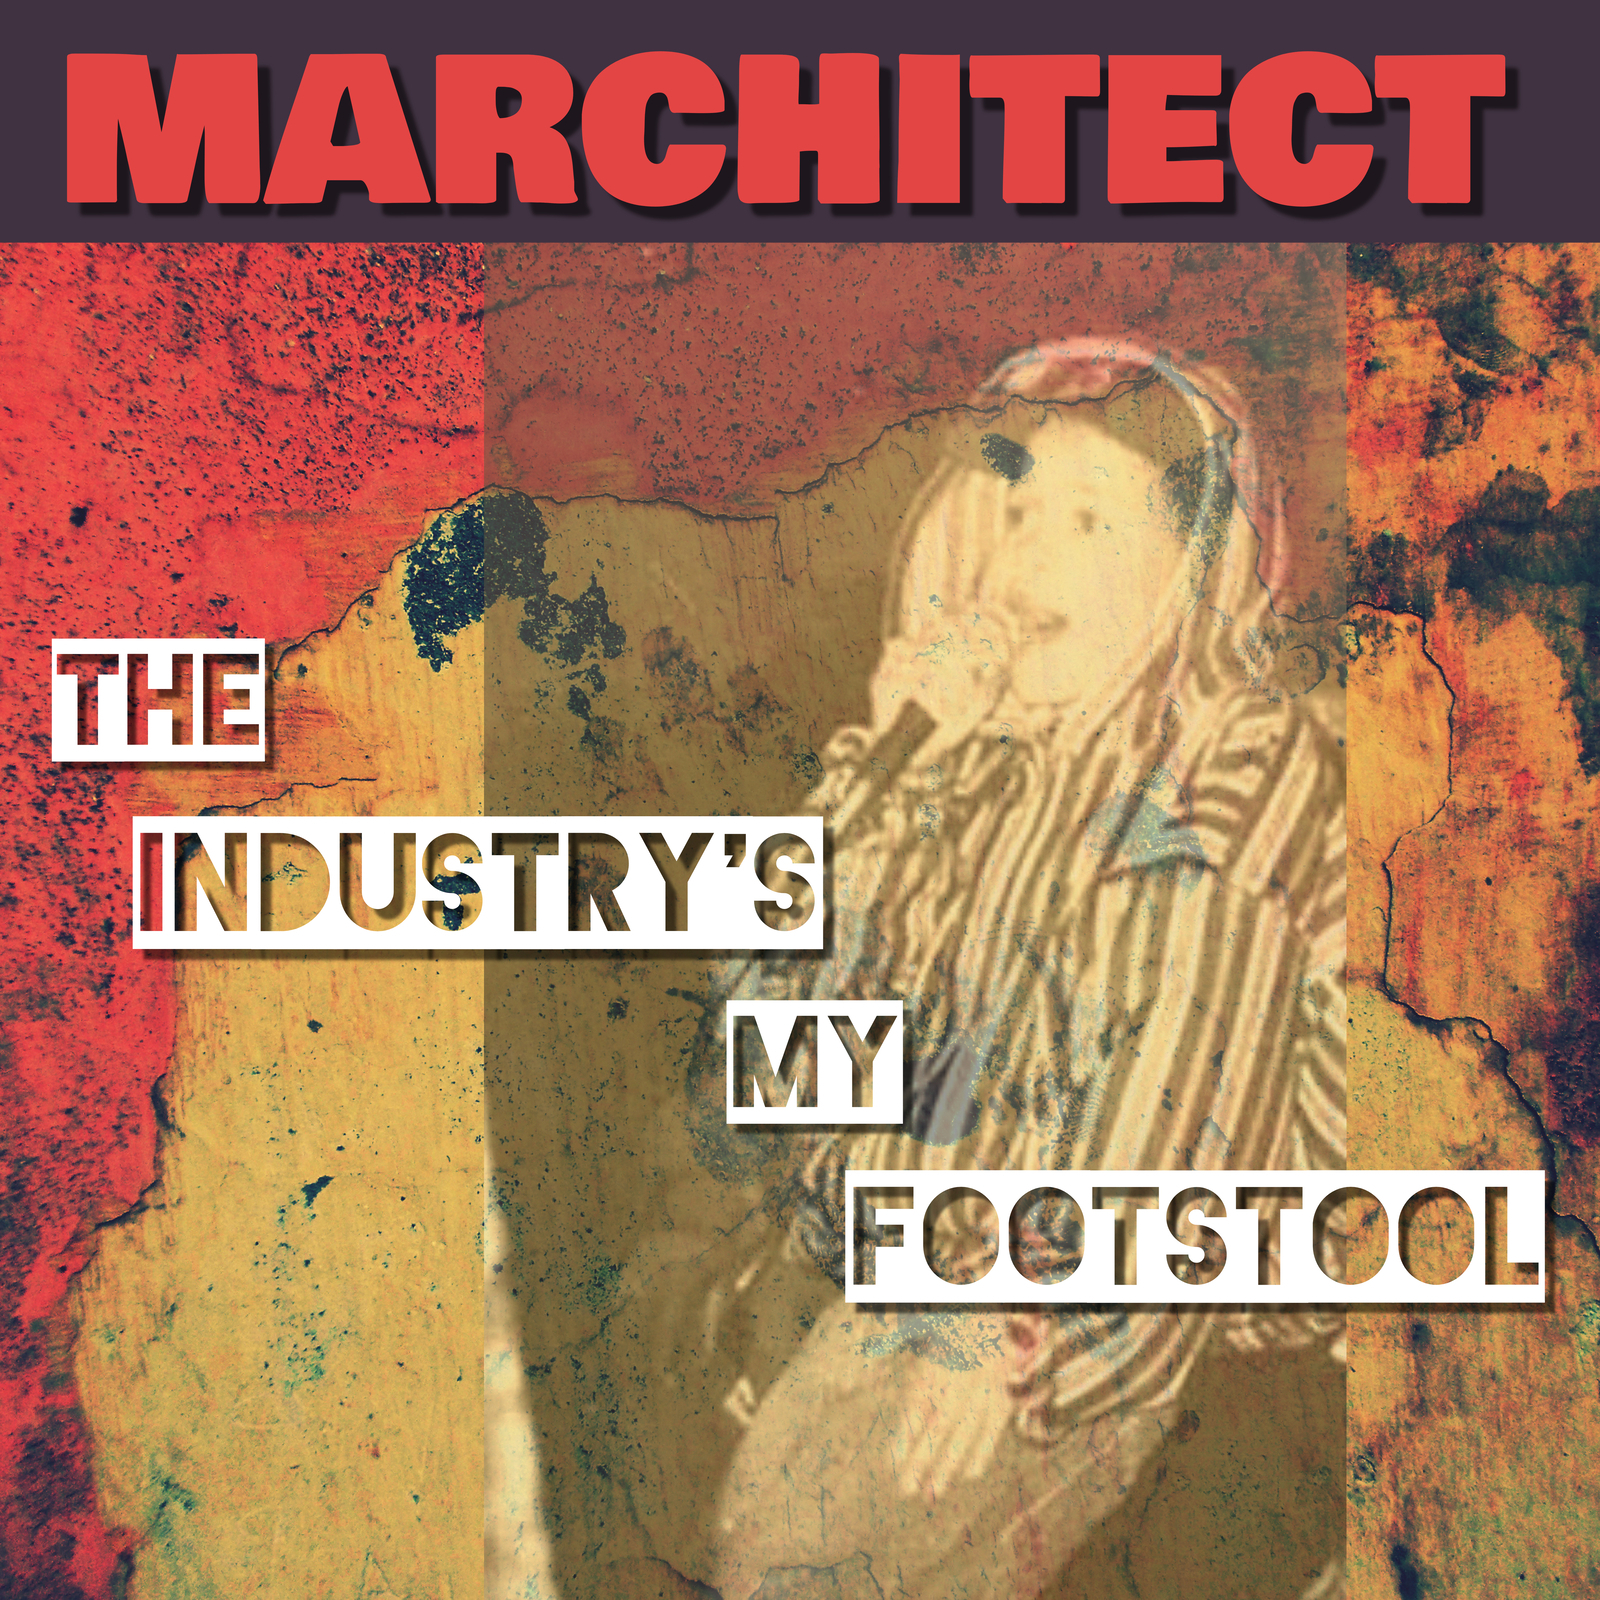 Marchitect – The Industry's My Footstool on Yaheard Records.